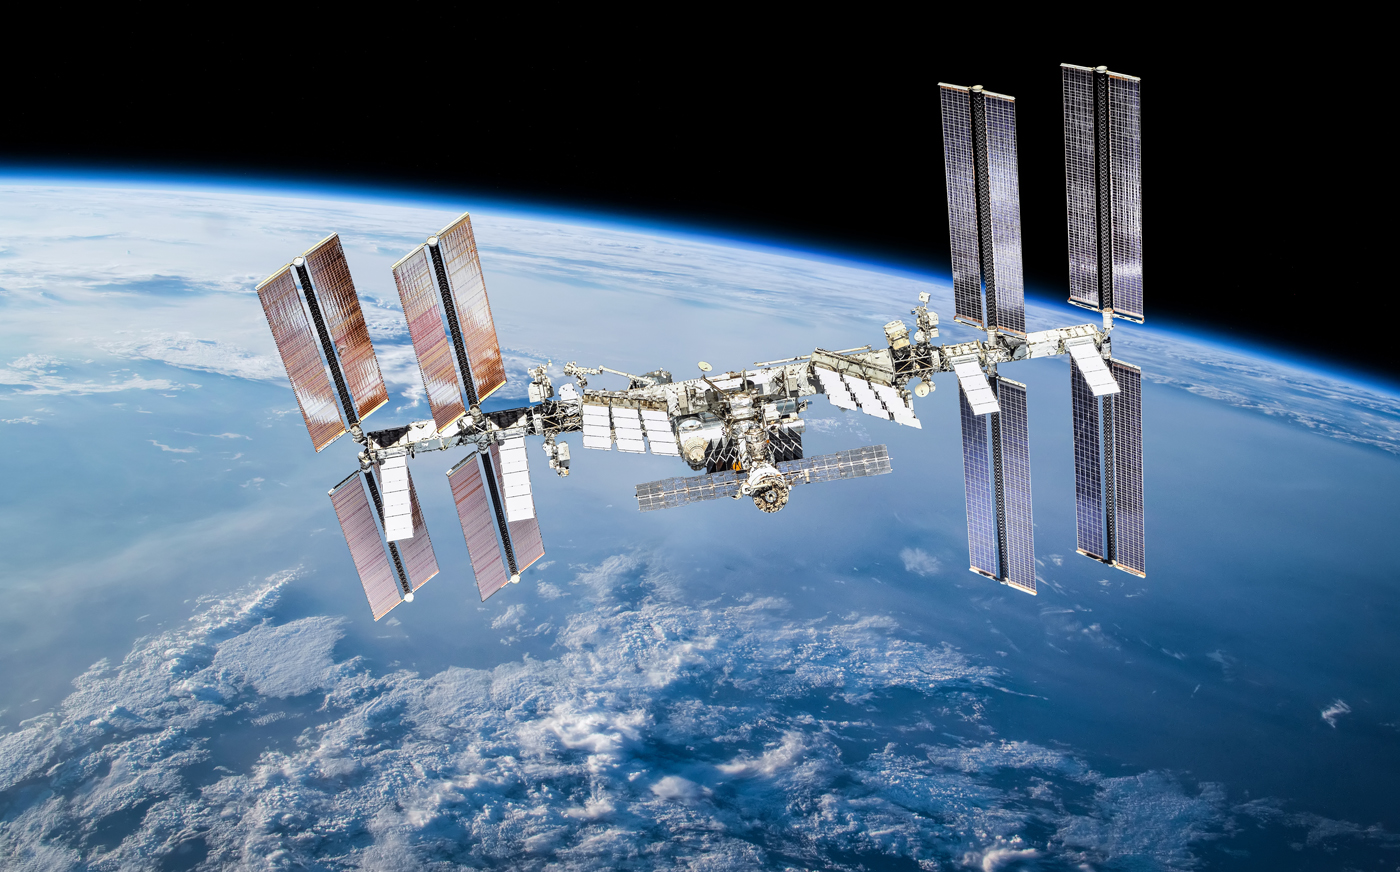 Russia says it will leave the ISS and launch its own space station